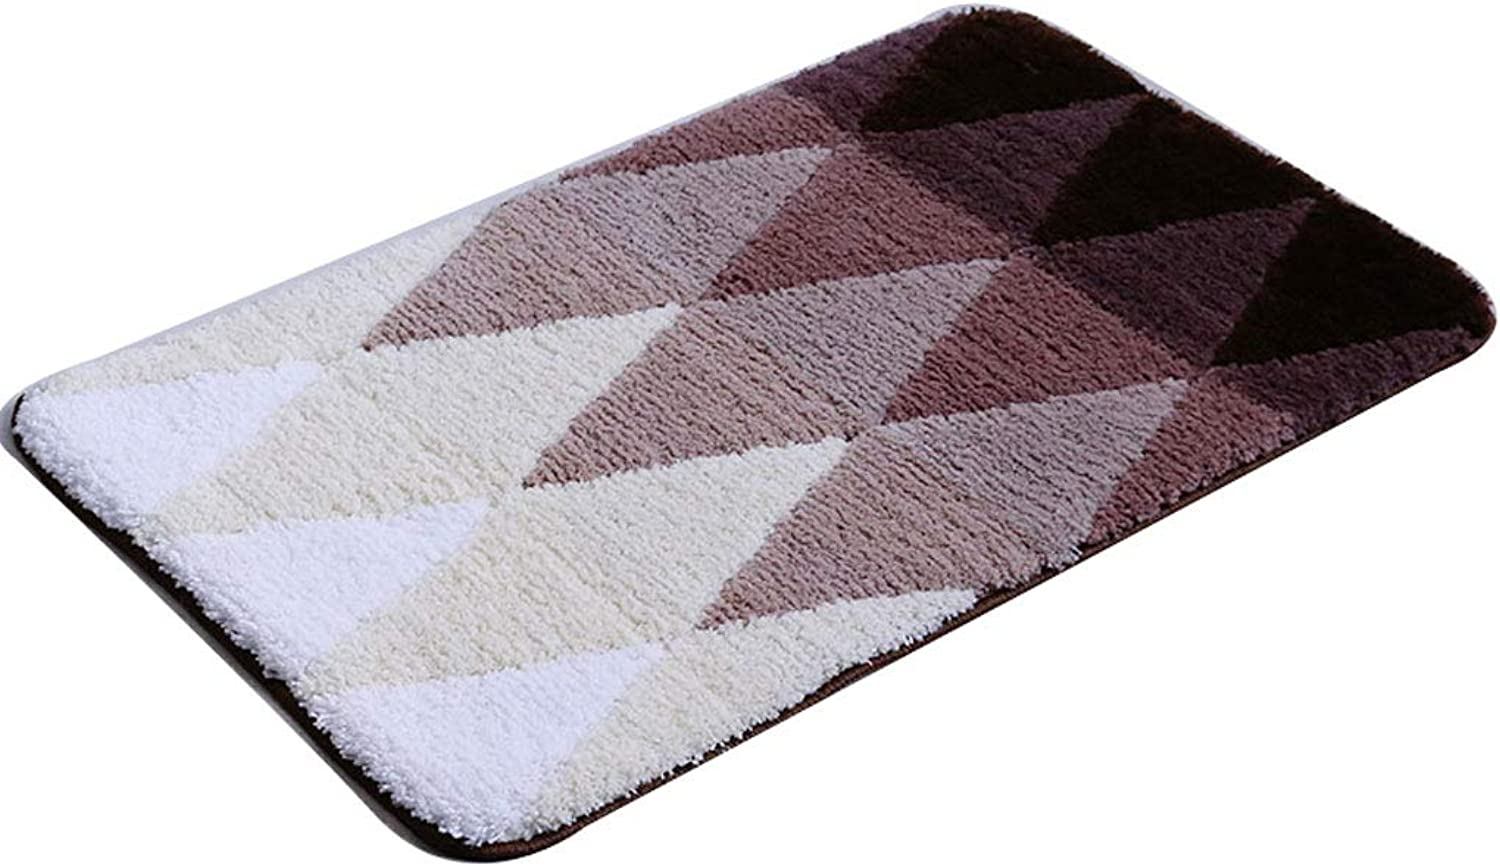 Bathroom Floor Mat Door Mat Door Mat Door Entrance Door Hall Anti-Skid Absorbent Bathroom Mat (can Be Cut) (color   D, Size   40cm60cm)